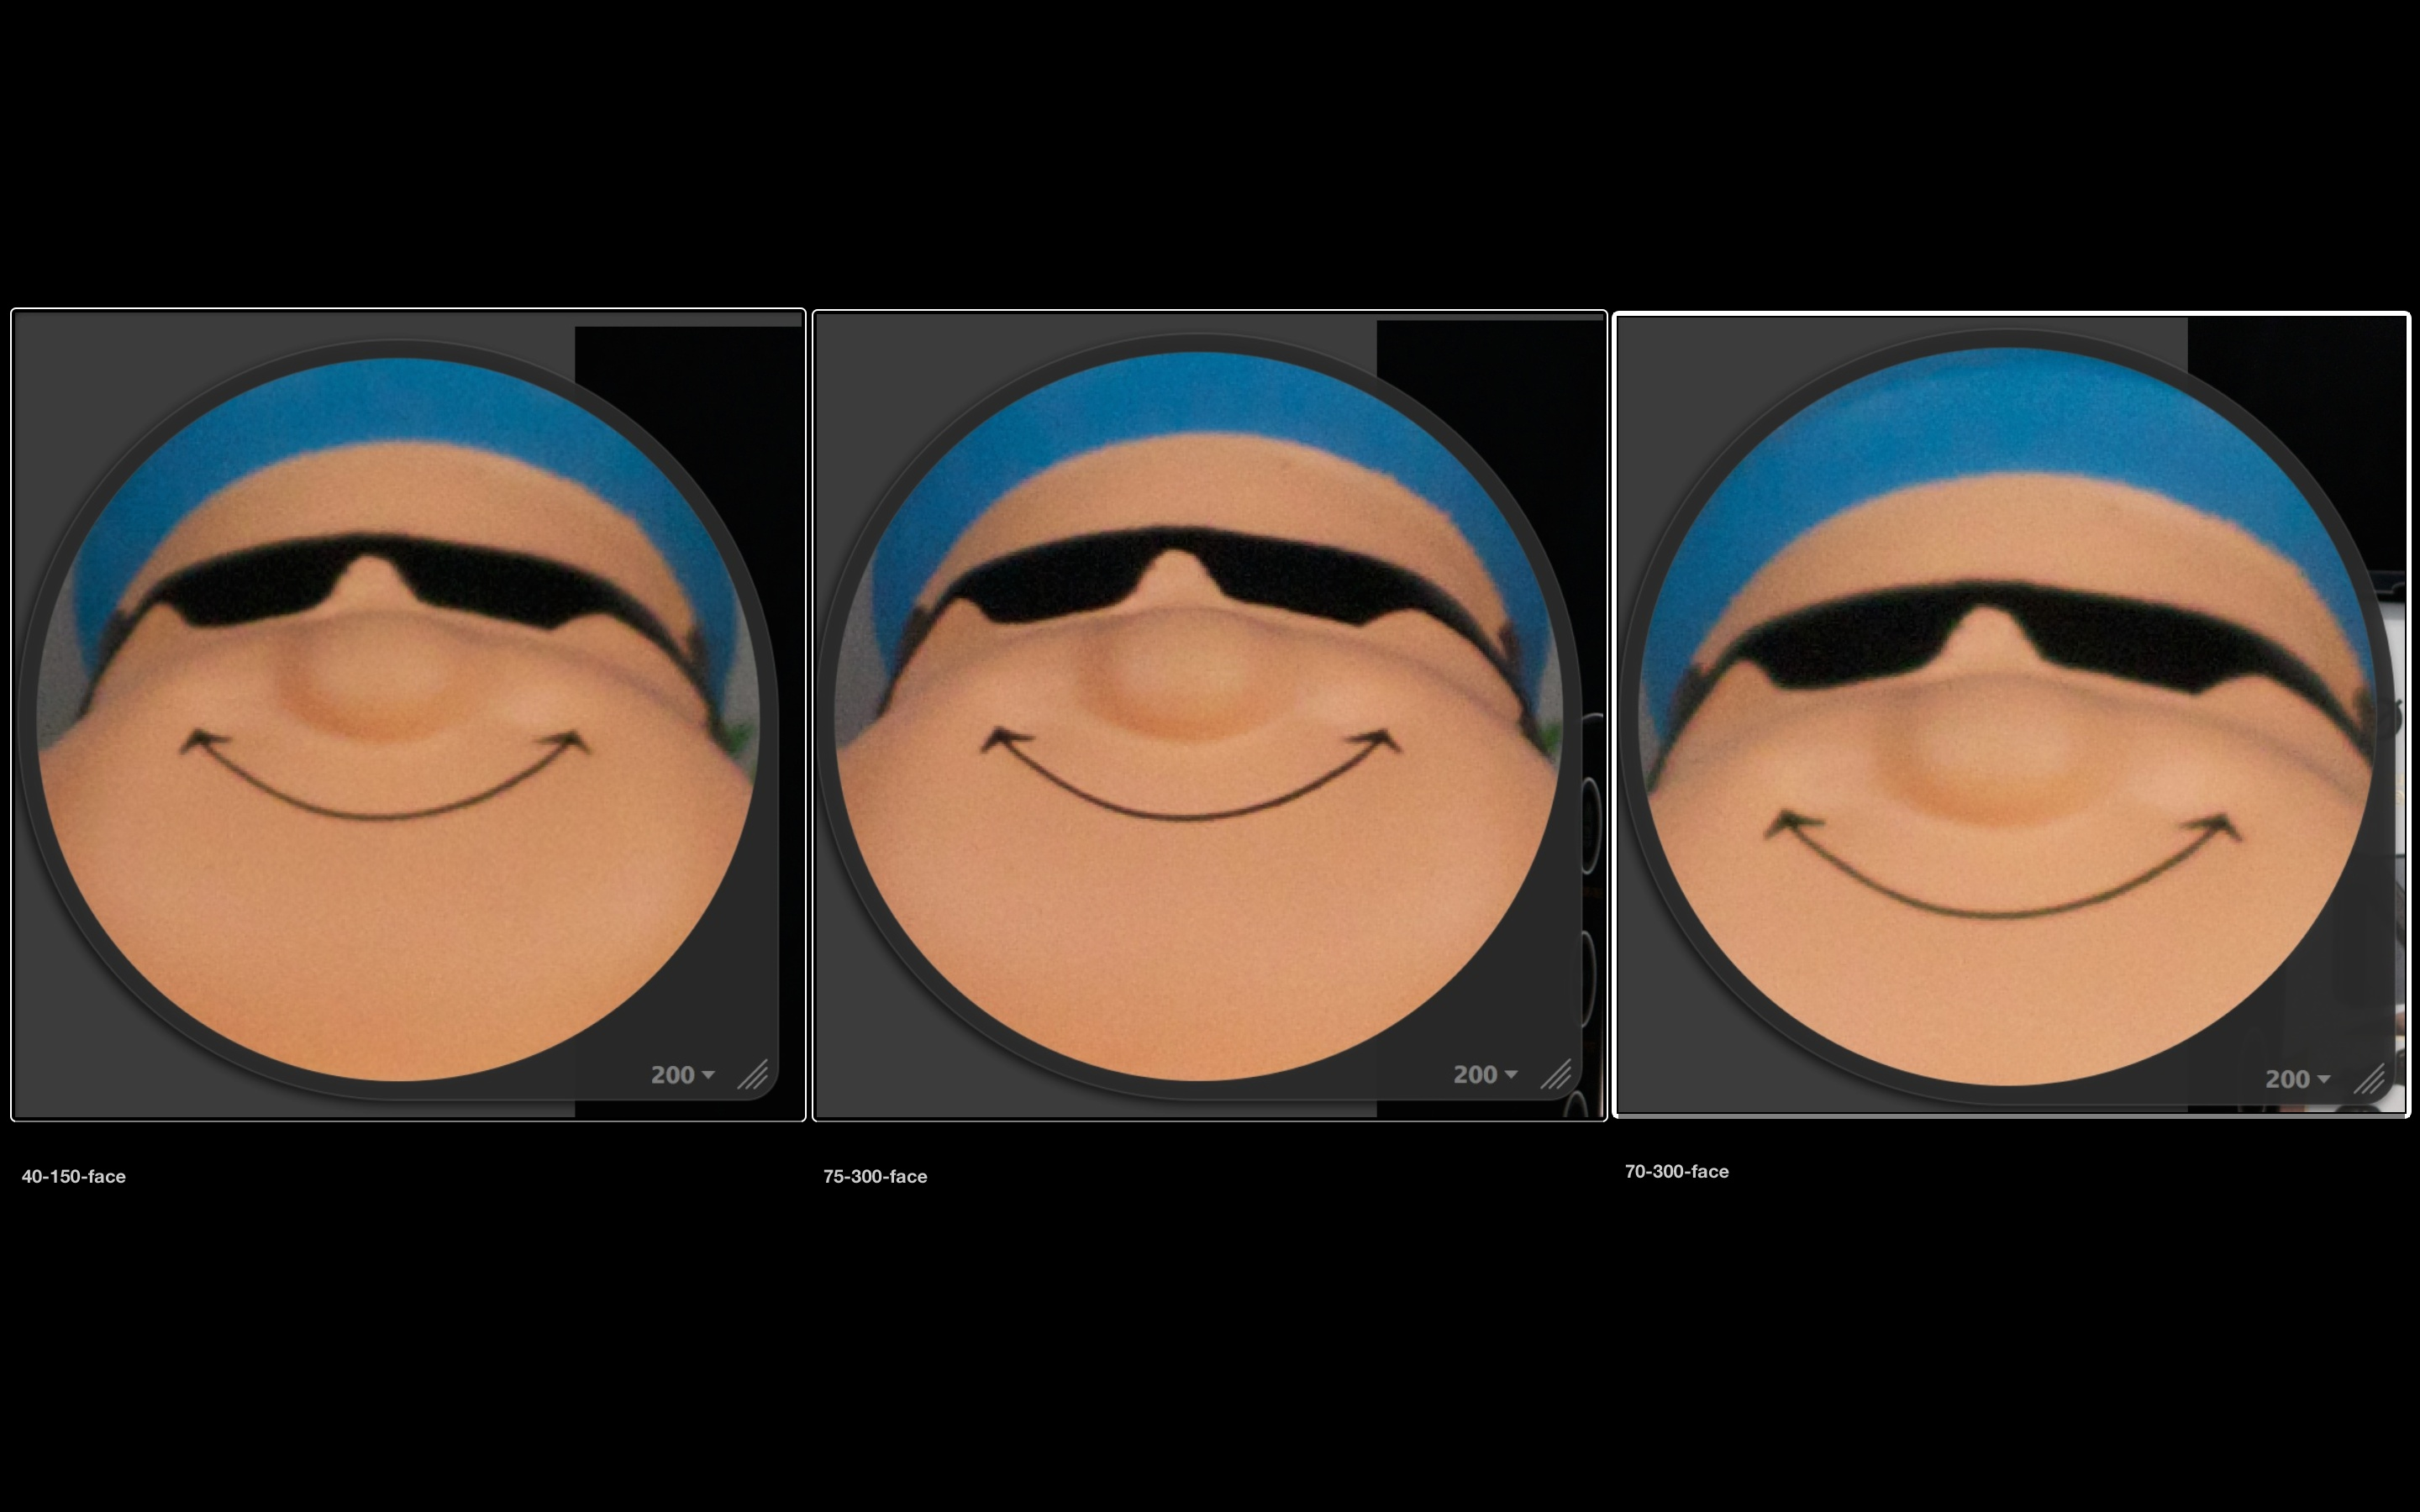 http://thedigitalstory.com/2014/07/27/face-comparison-test.jpg